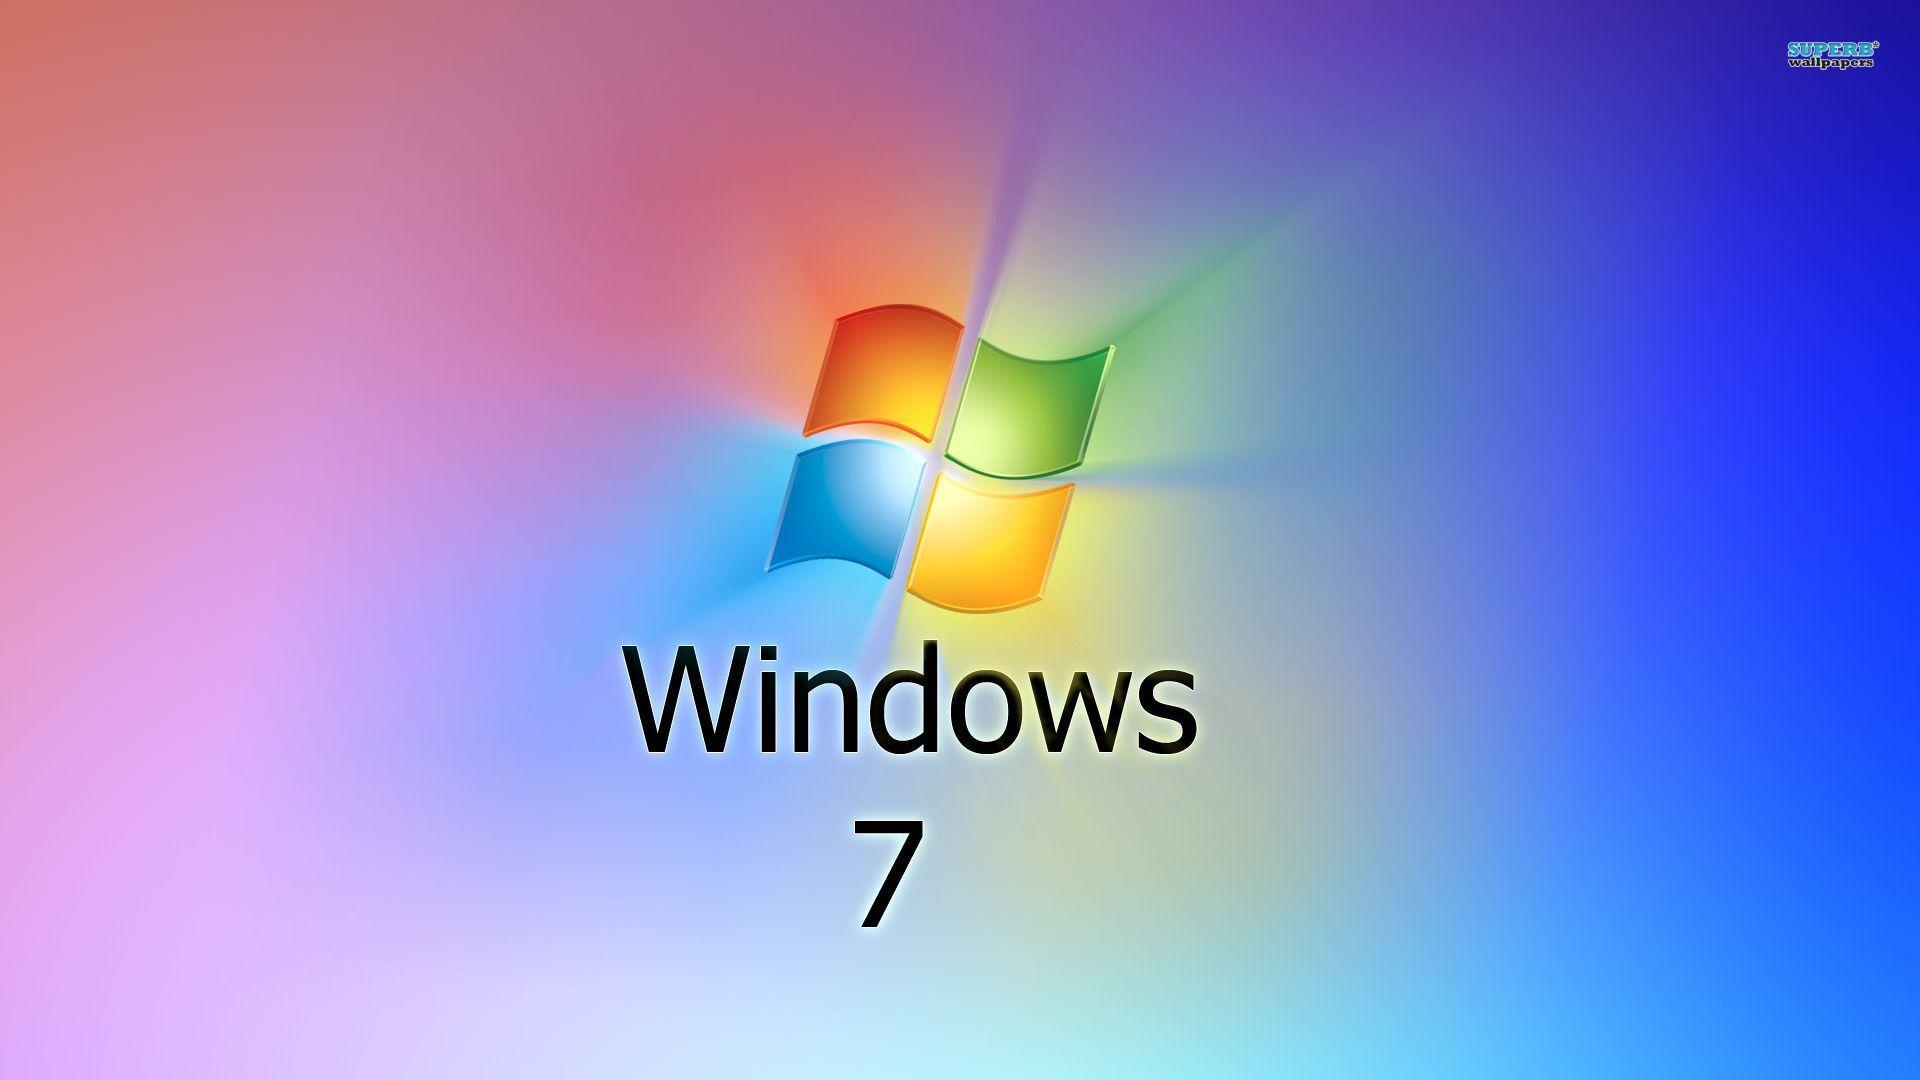 Win 7 Wallpapers Posted By Ryan Sellers